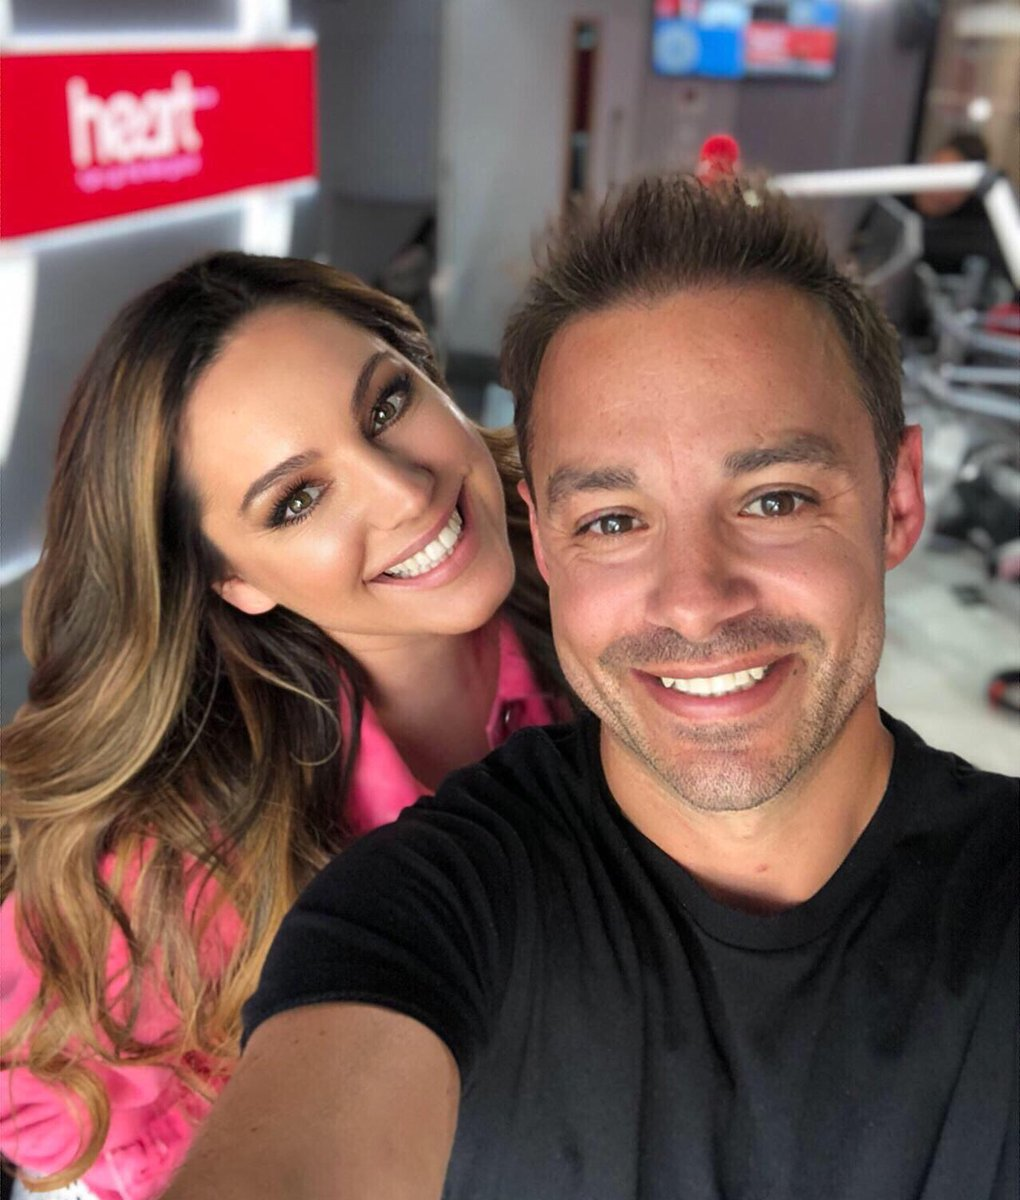 RT @thisisheart: Missed these two ???? @jkjasonking & @IAMKELLYBROOK are baaackkkk with you 'til 7pm! https://t.co/oaKWLWOnq0